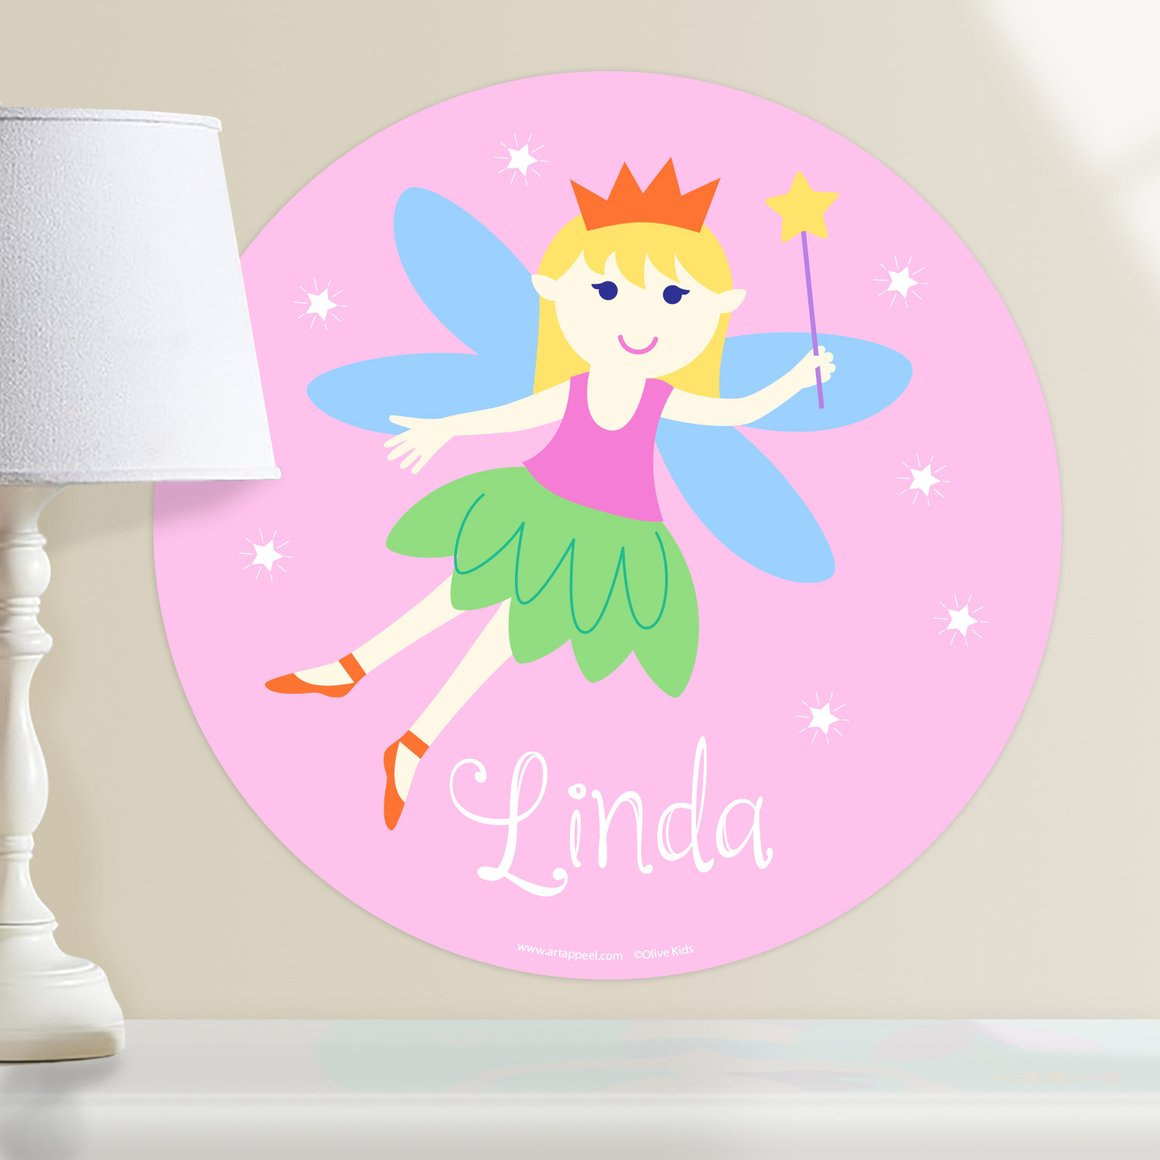 Fairy Princess (Light Skin, Blonde Hair) Personalized Kids Wall Dotz Decal